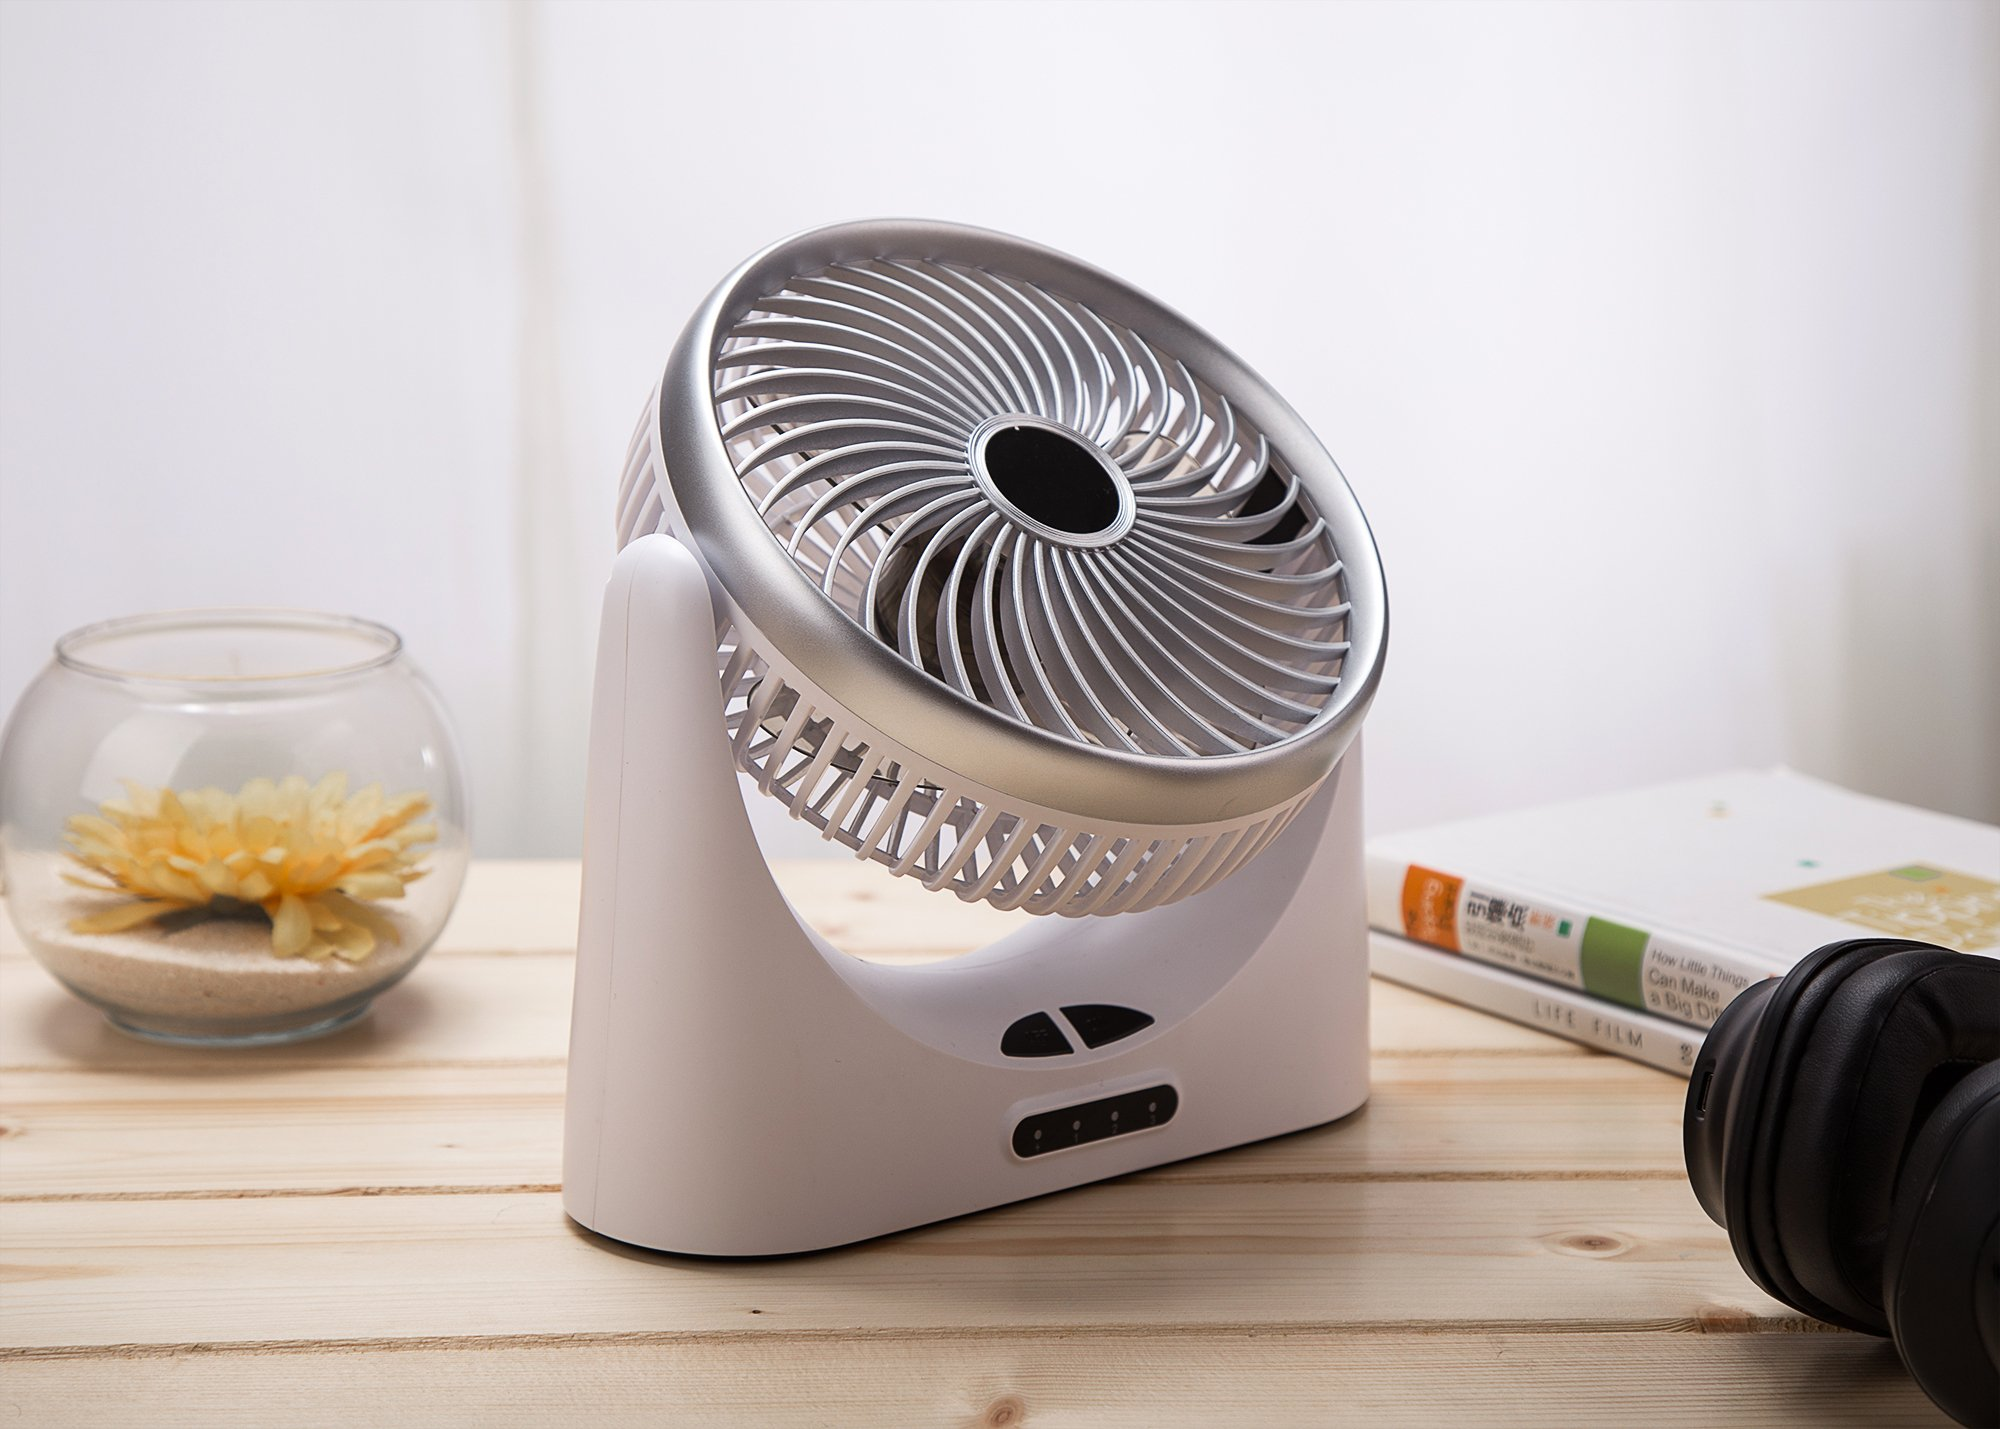 HCMAOE Mini USB Table Desk Personal Portable Air Circulator Fan 3 Speed, Lower Noise, Powered by USB or 4000mAh Rechargeable 18650 Battery with Power bank Function, Side LED Light for Office, (Silver) by HCMAOE (Image #9)